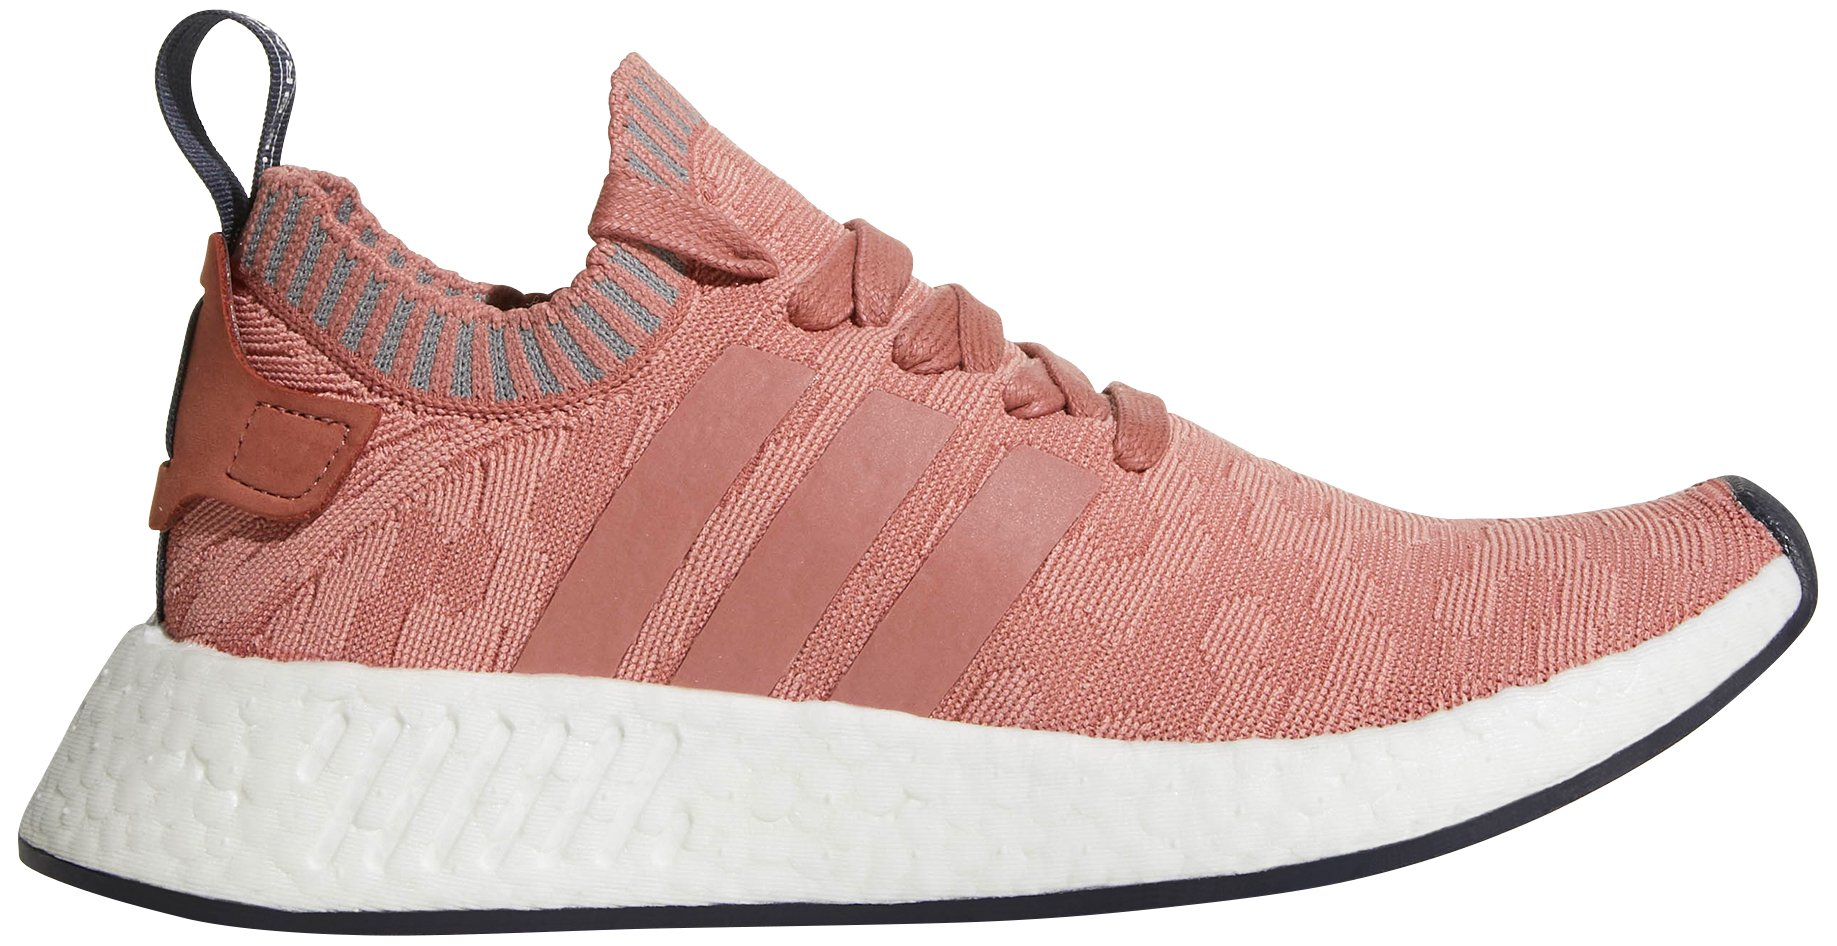 77a909762 Galleon - Adidas Originals Women s NMD R2 PK W Running Shoe Raw Pink Grey  Three